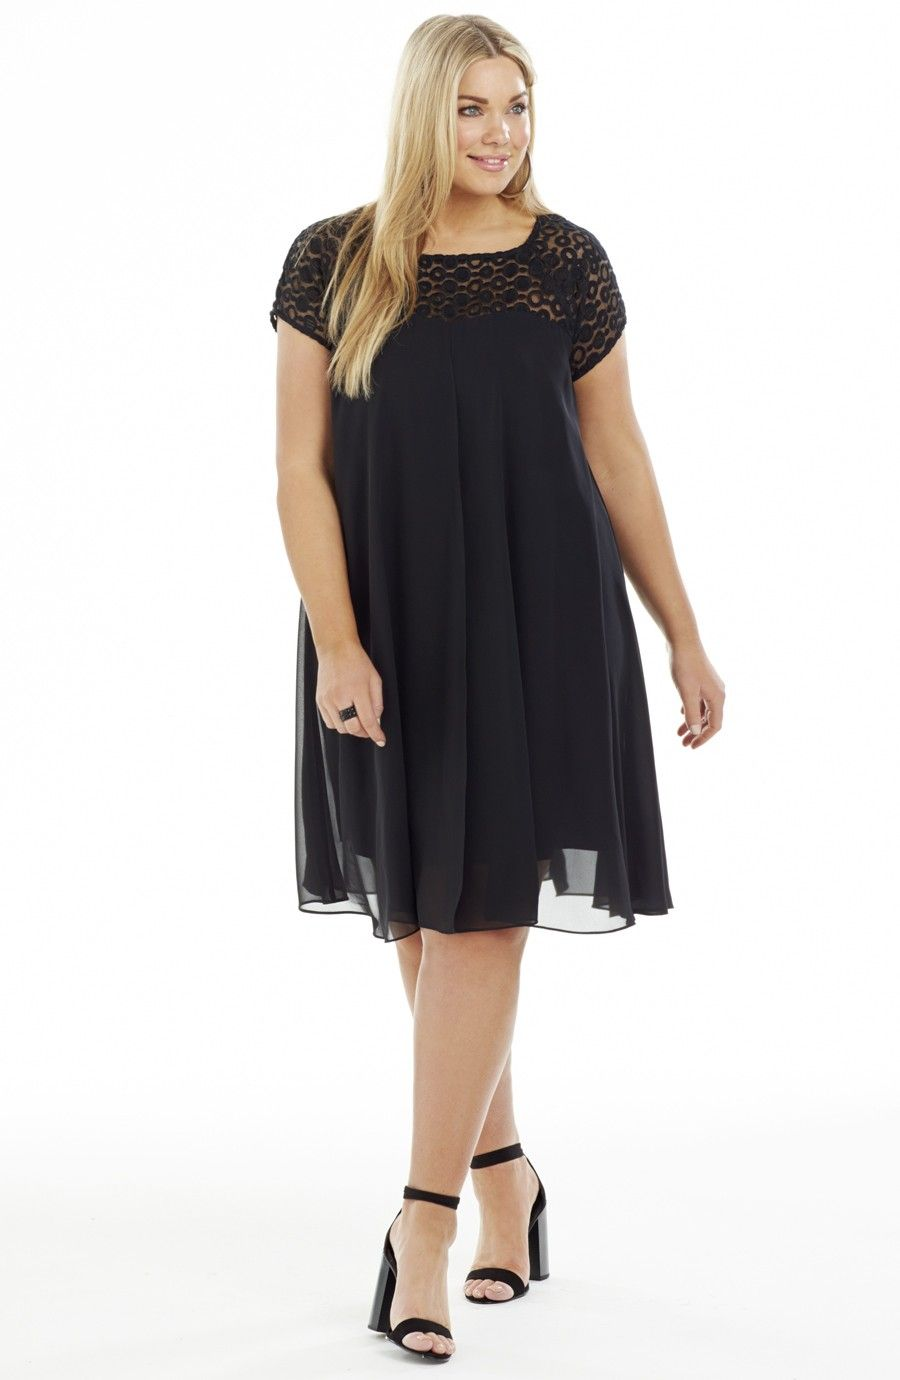 Black dress under knee - Swing Dress With A Flowy Overlay Black Style No Ed5143 Knee Length Swing Party